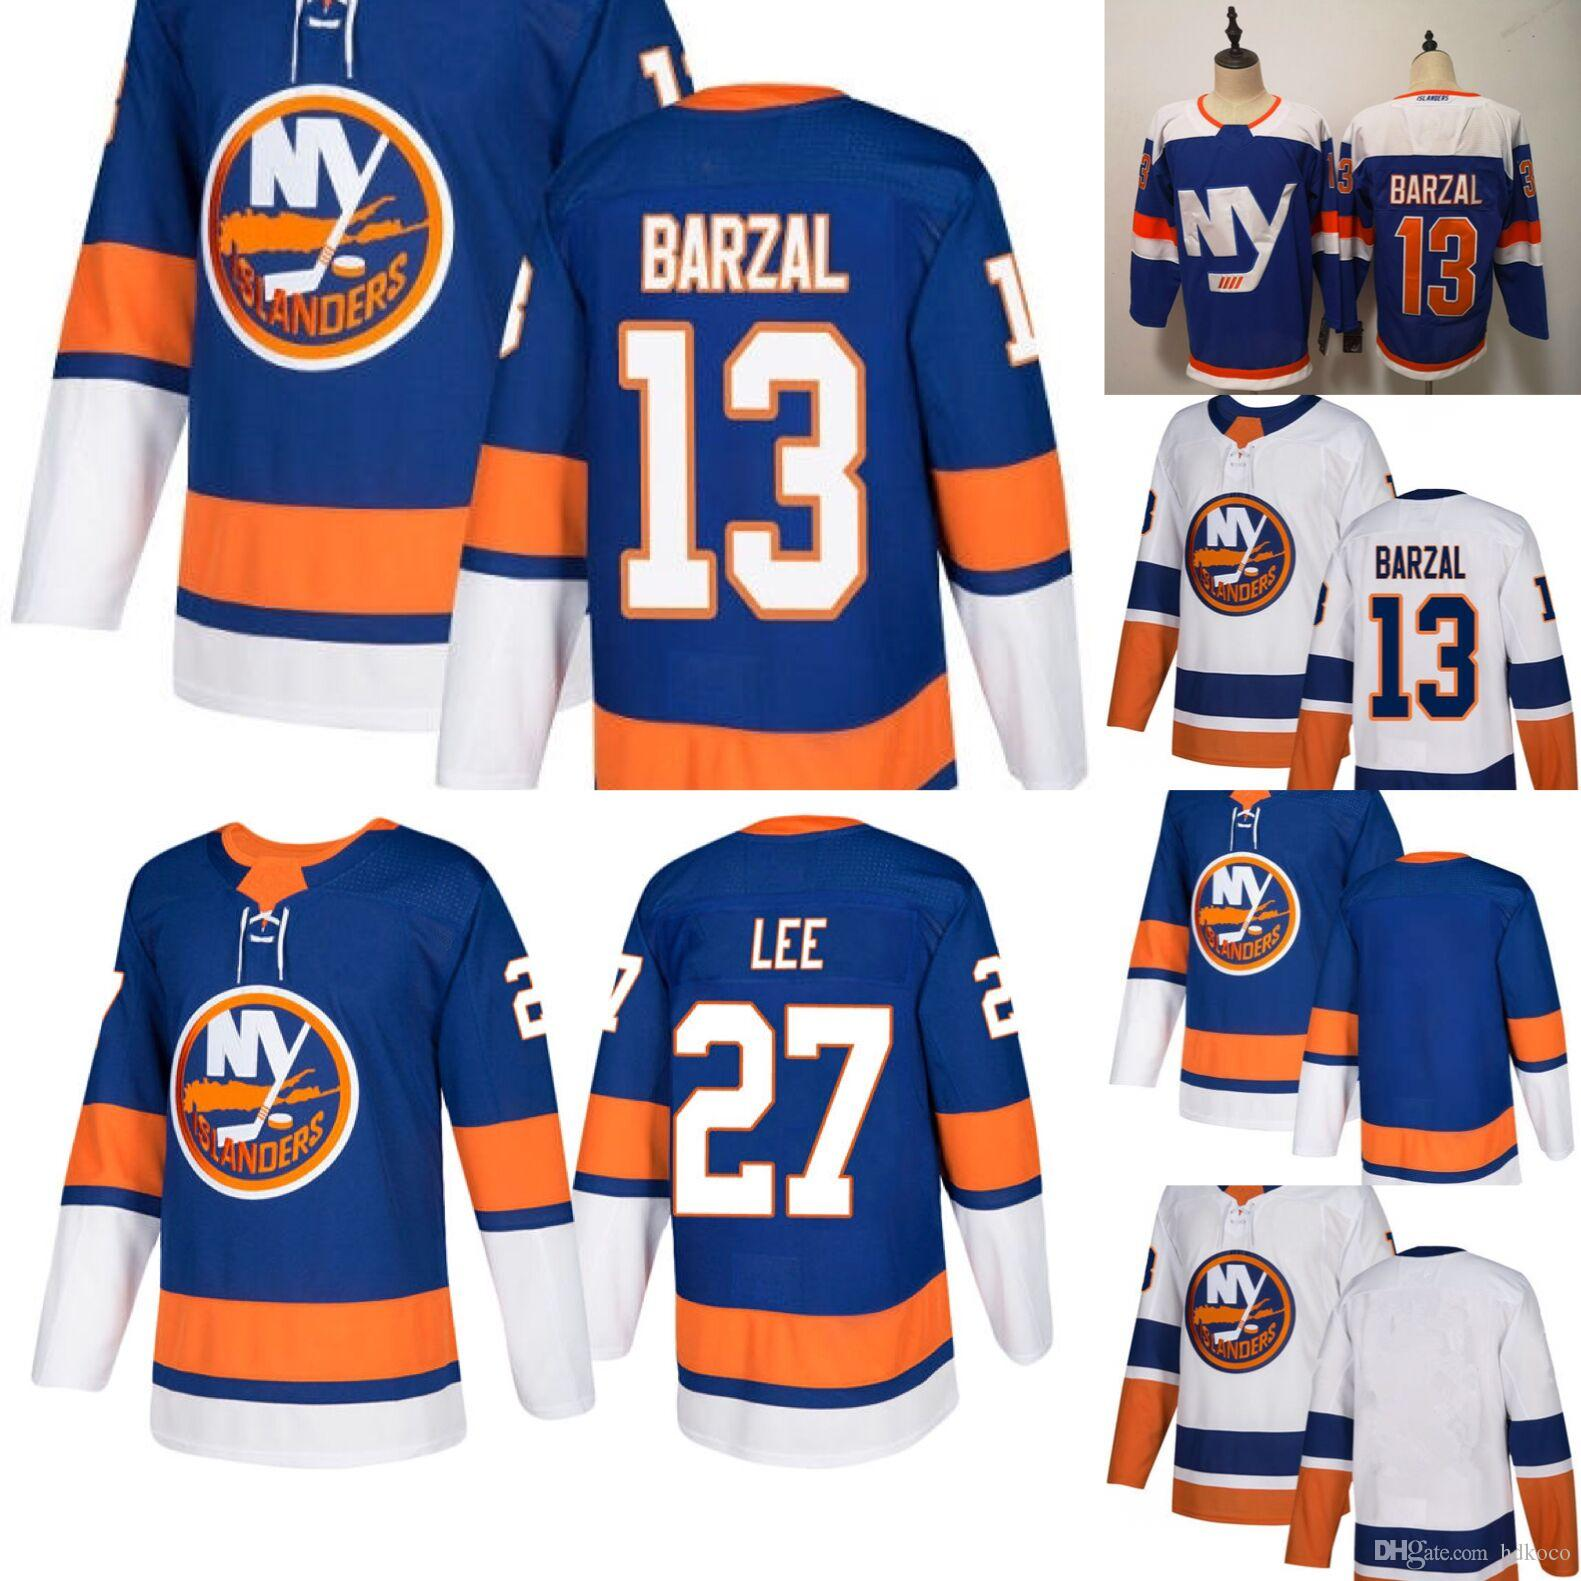 2019 2019 New York Islanders Alternate Third Blue 13 Mathew Barzal Jersey  27 Anders Lee Denis Potvin Hockey White Stitched Men From Hdkoco cce1152ee